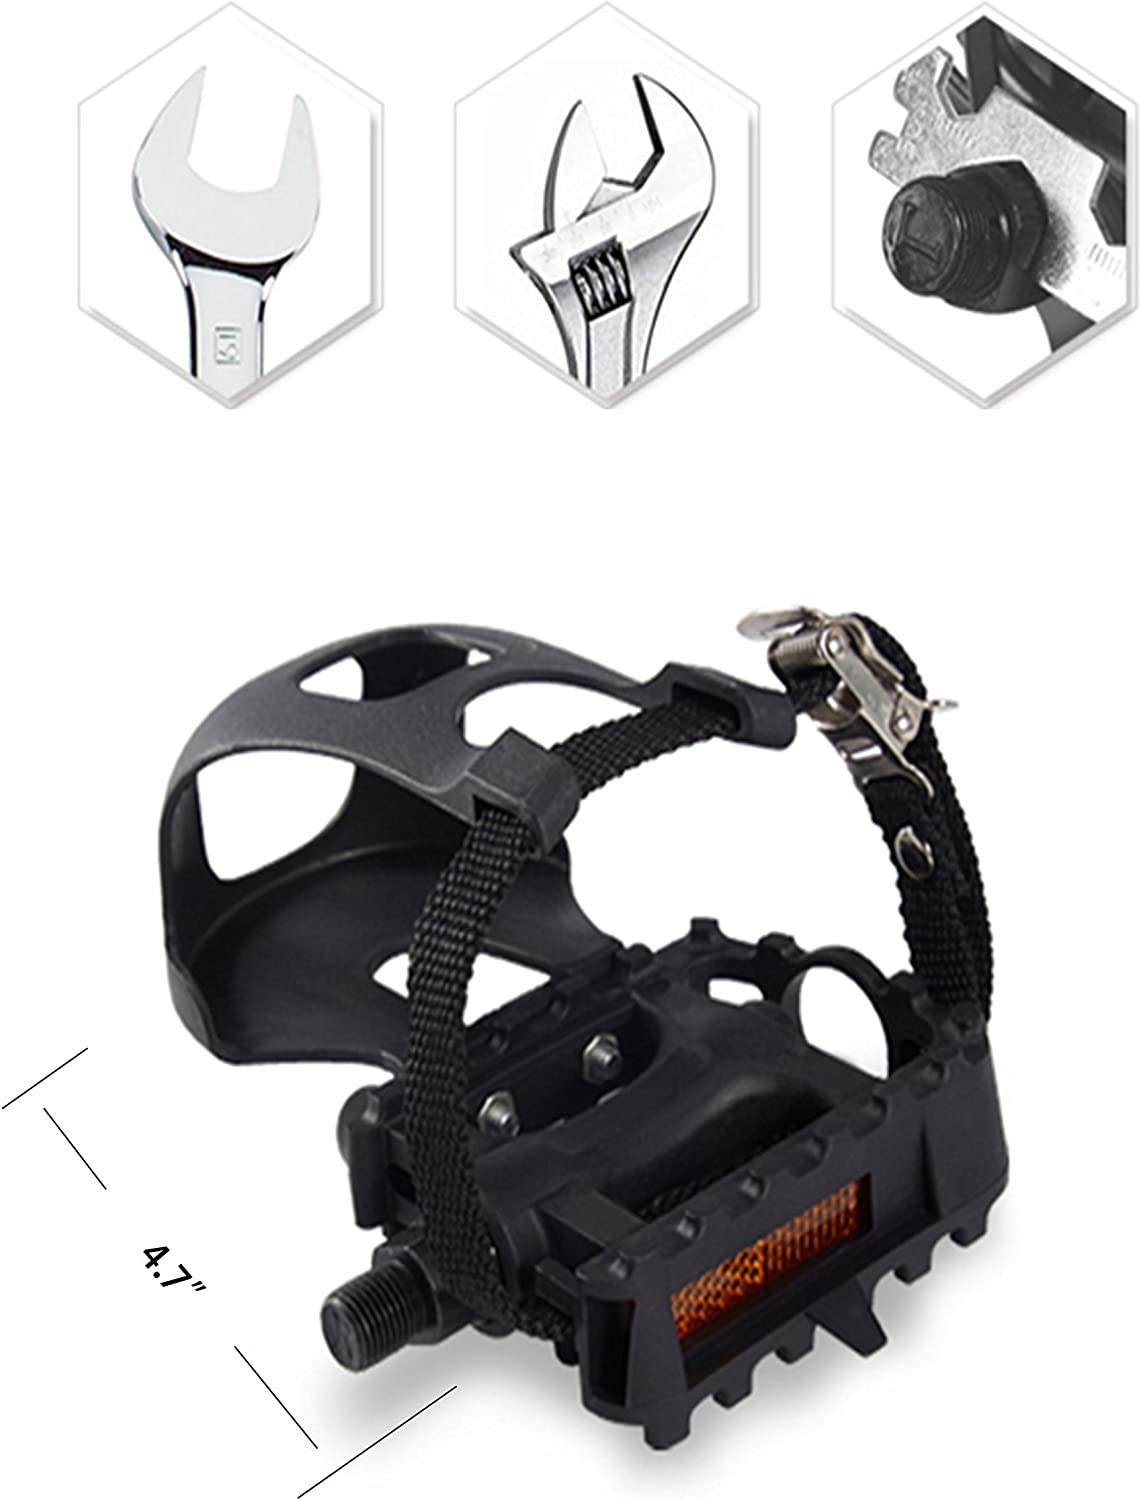 Easy to Install Nice Toe-Room Area AbraFit 9//16-Inch Premium Quality Bicycle Pedals with Toe Clips and Straps